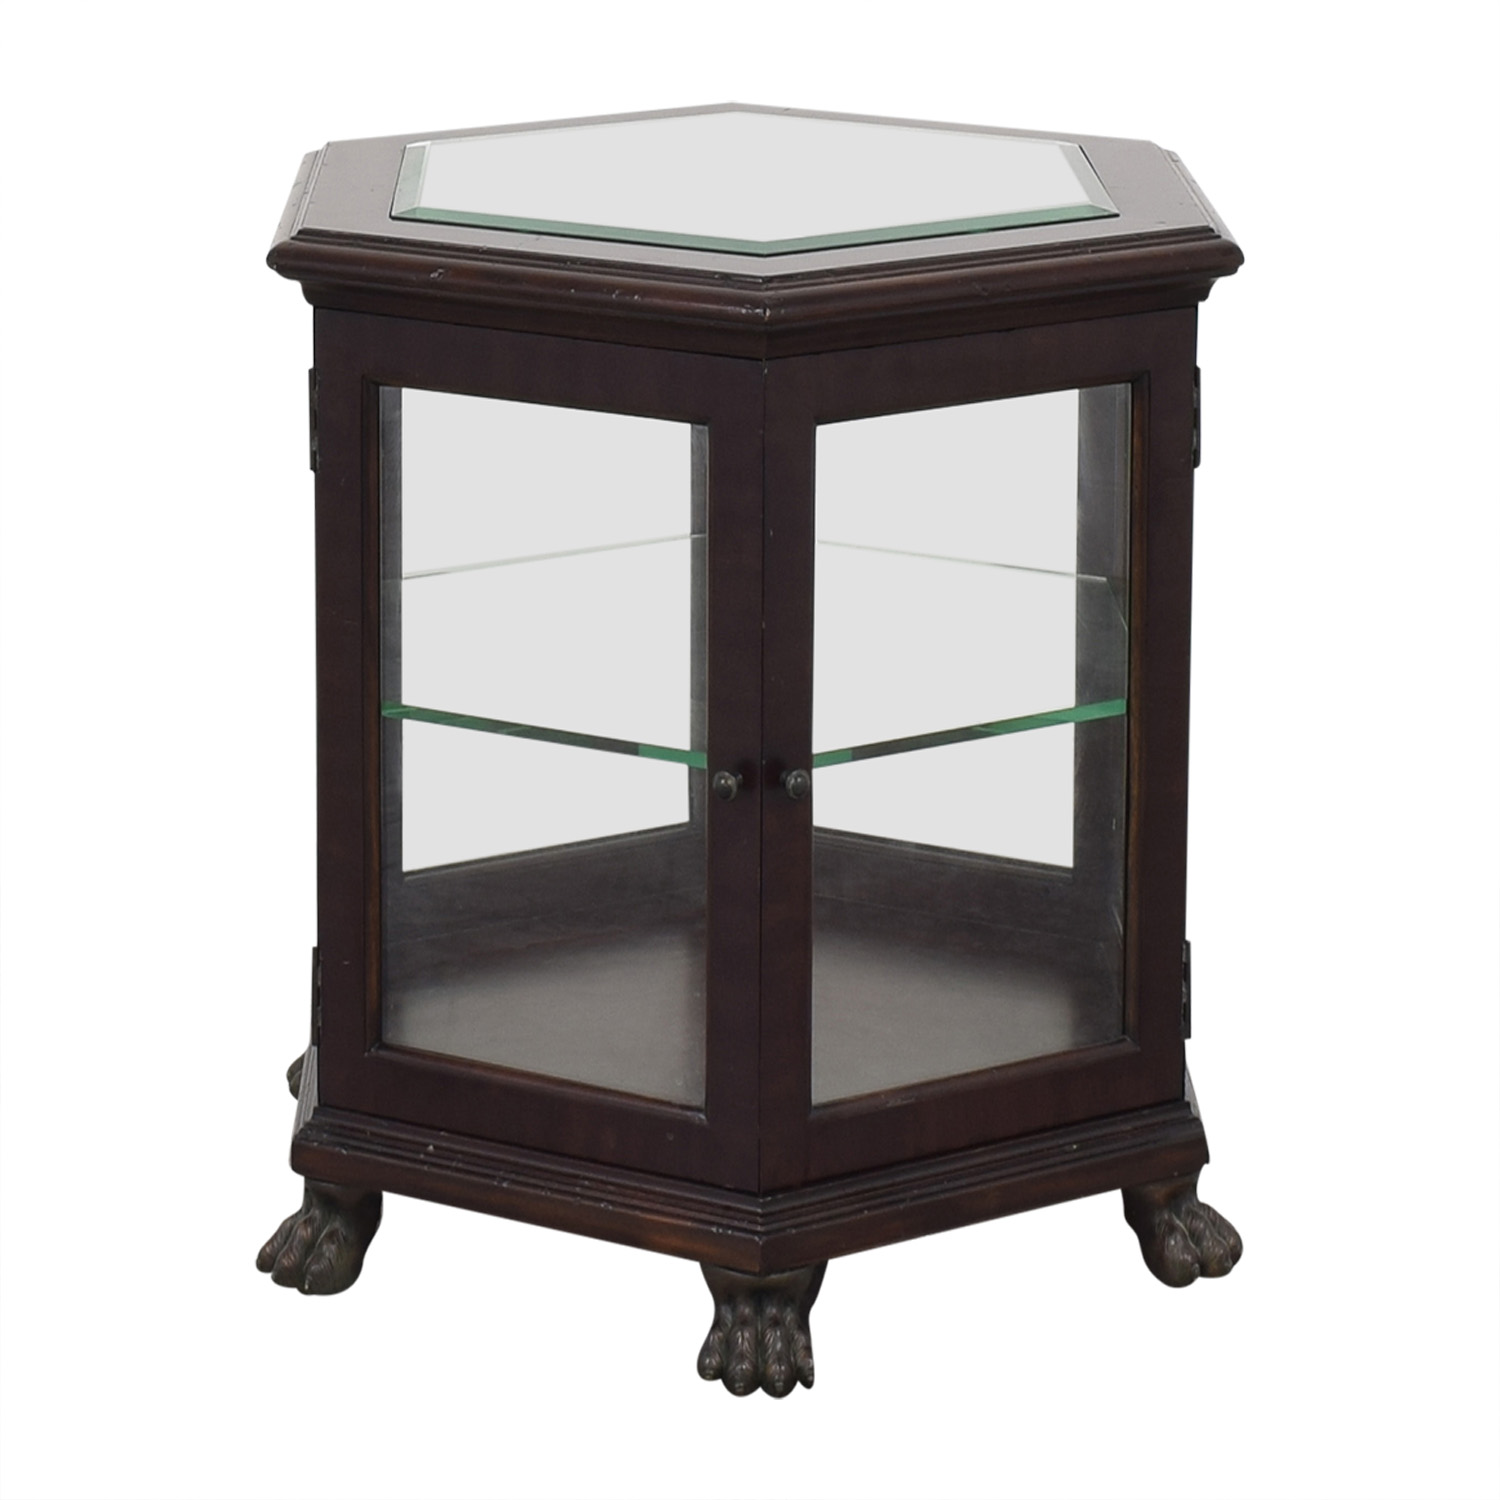 Thomasville Thomasville Hexagon End Table Tables